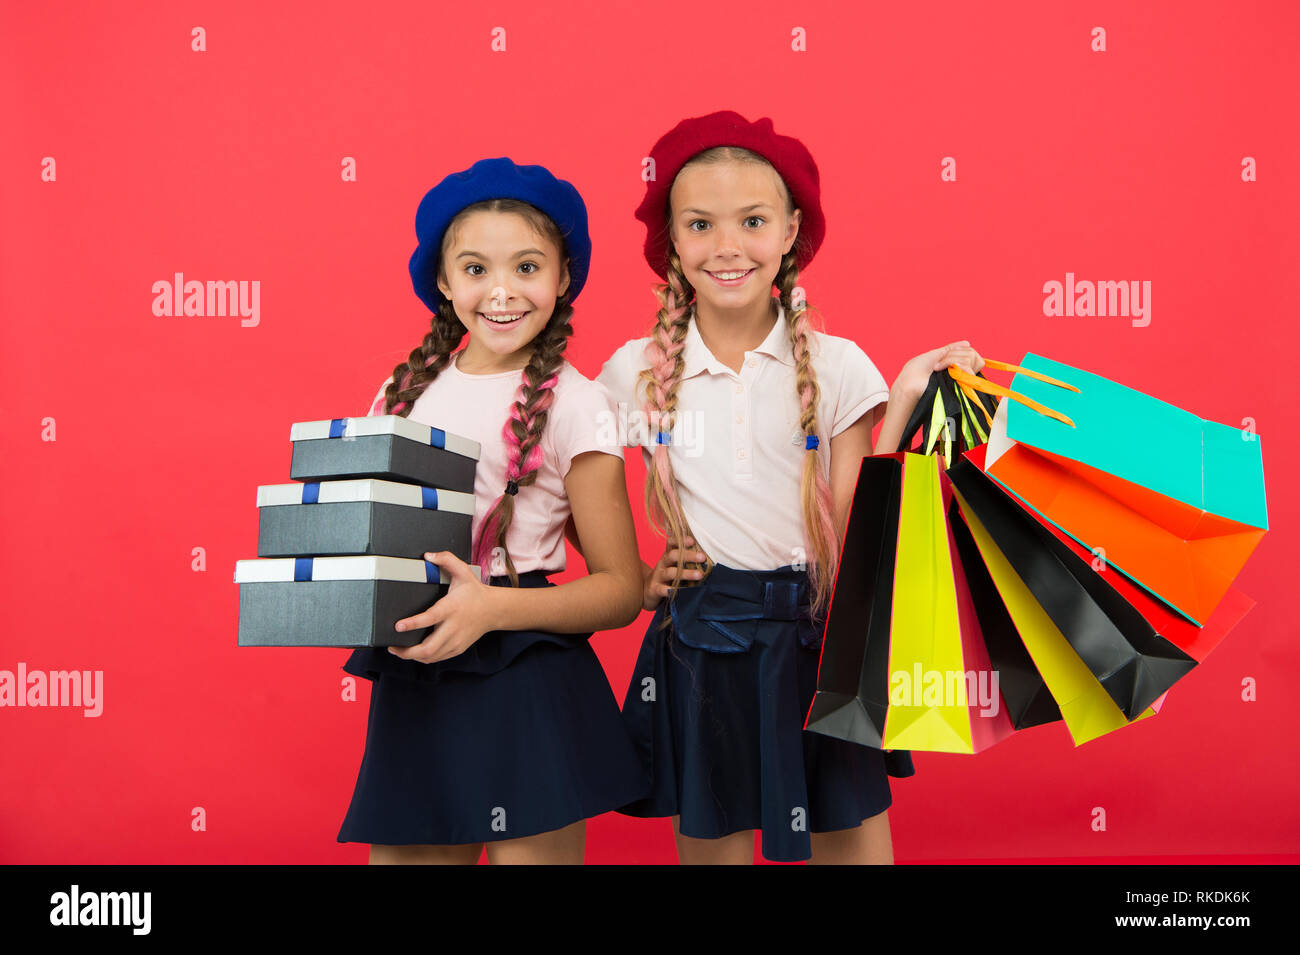 Birthday Present Shopping And Holidays For My Dear Friend Girl Giving Gift Box To Girls Friends Celebrate Holiday Children Formal Wear With